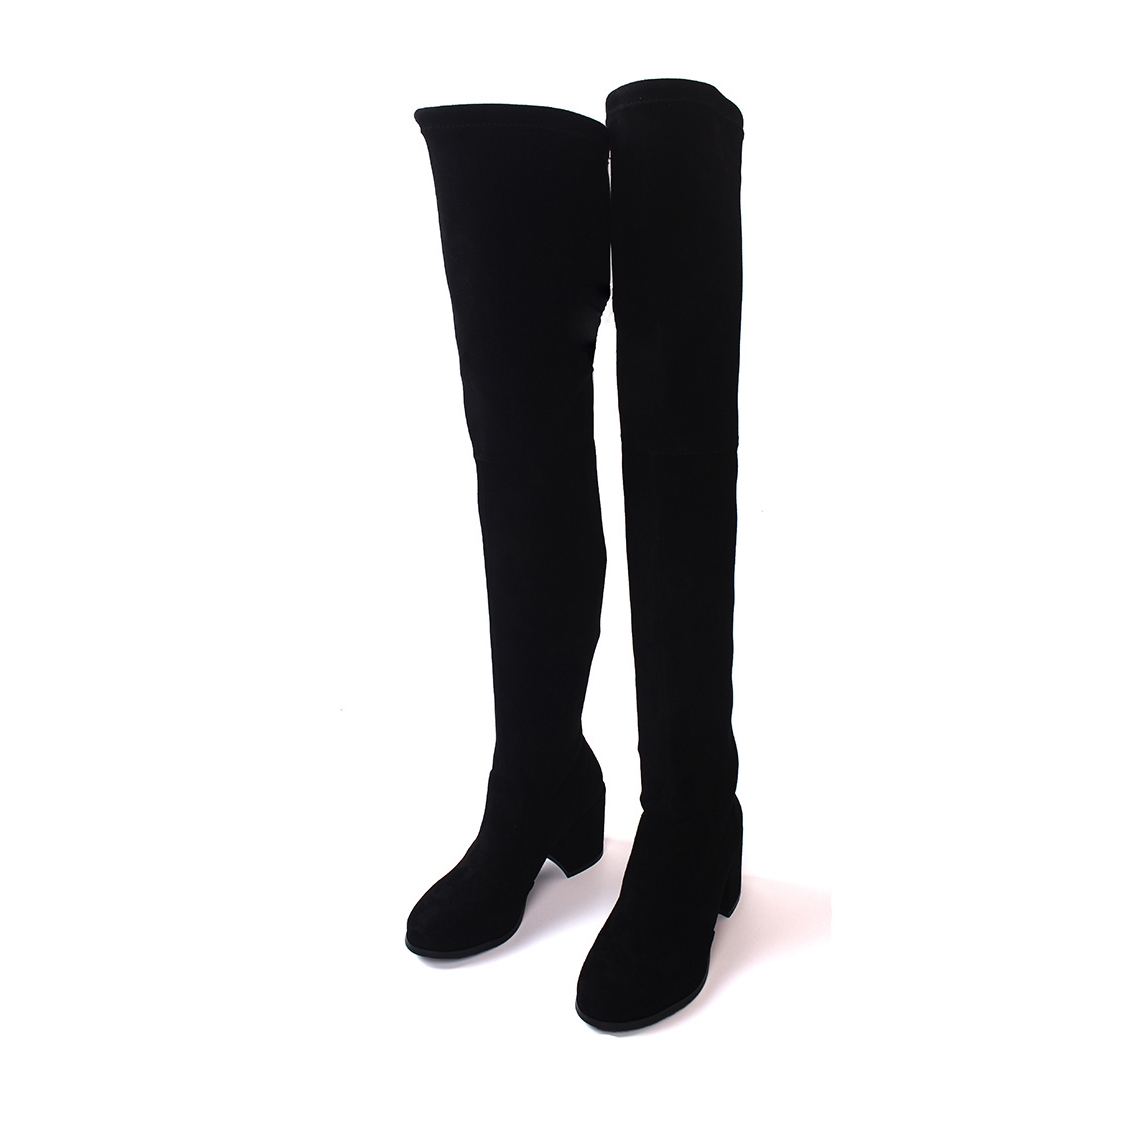 New Arrival Fashion Over The Knee Boots Women Casual Kid Suede Square Heels Round Toe Vintage Style Long Boots Shoes CN-A0000 airfour new fashion style warm winter boots for women over the knee round toe square high heels poitnted toe fashion lady shoes